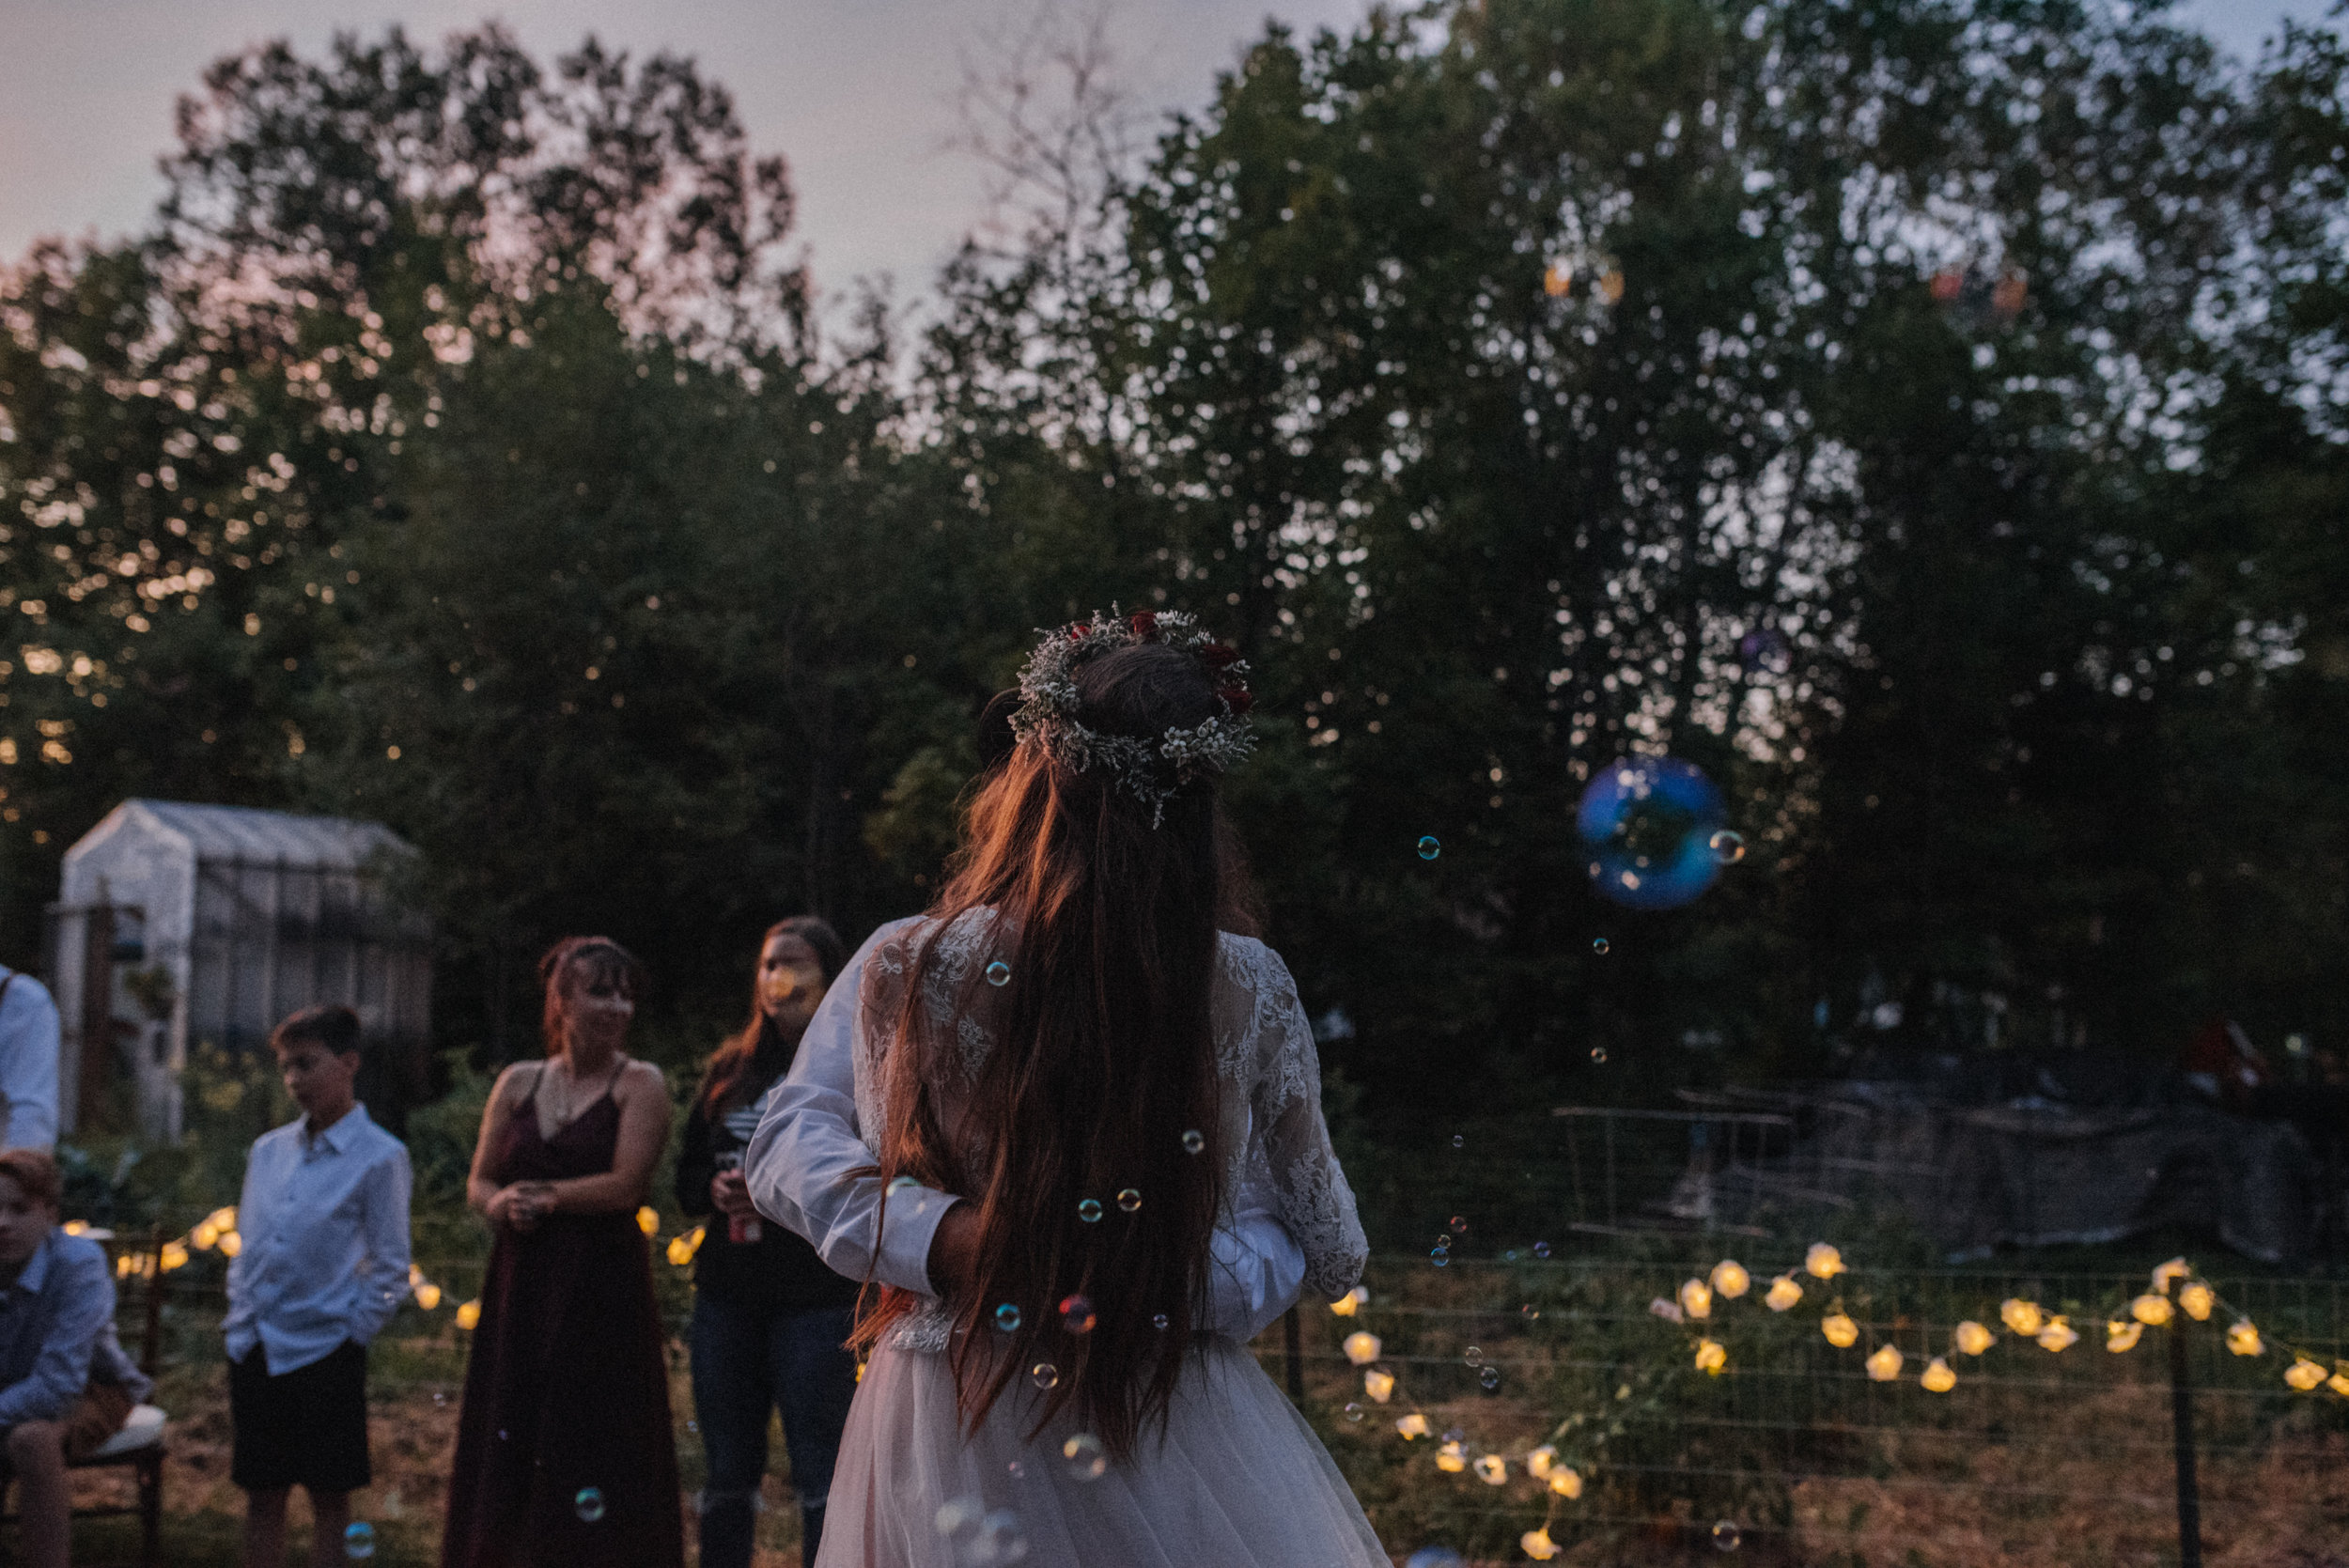 ottawa_wedding_photographer_gatineau_photographe_mariage_documentary_candid_photojournalist_natural_raw_boho_wedding_backyard (48).JPG